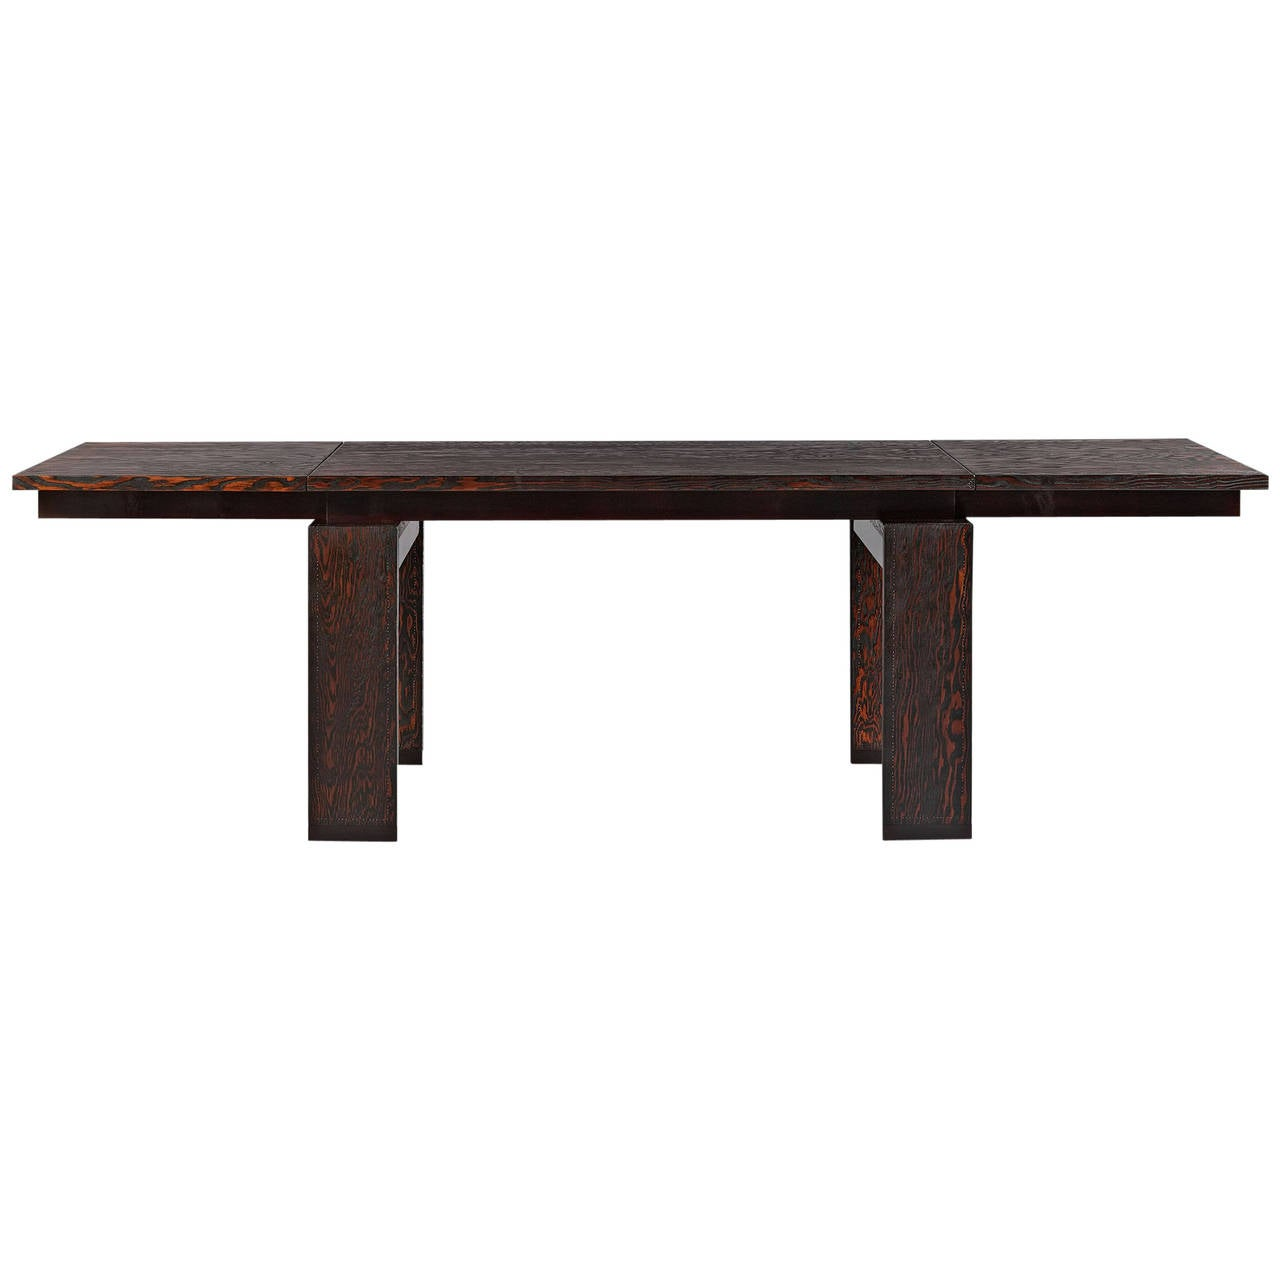 Oregon pine dining room table for sale tables oregon for Dining room tables 6 seater